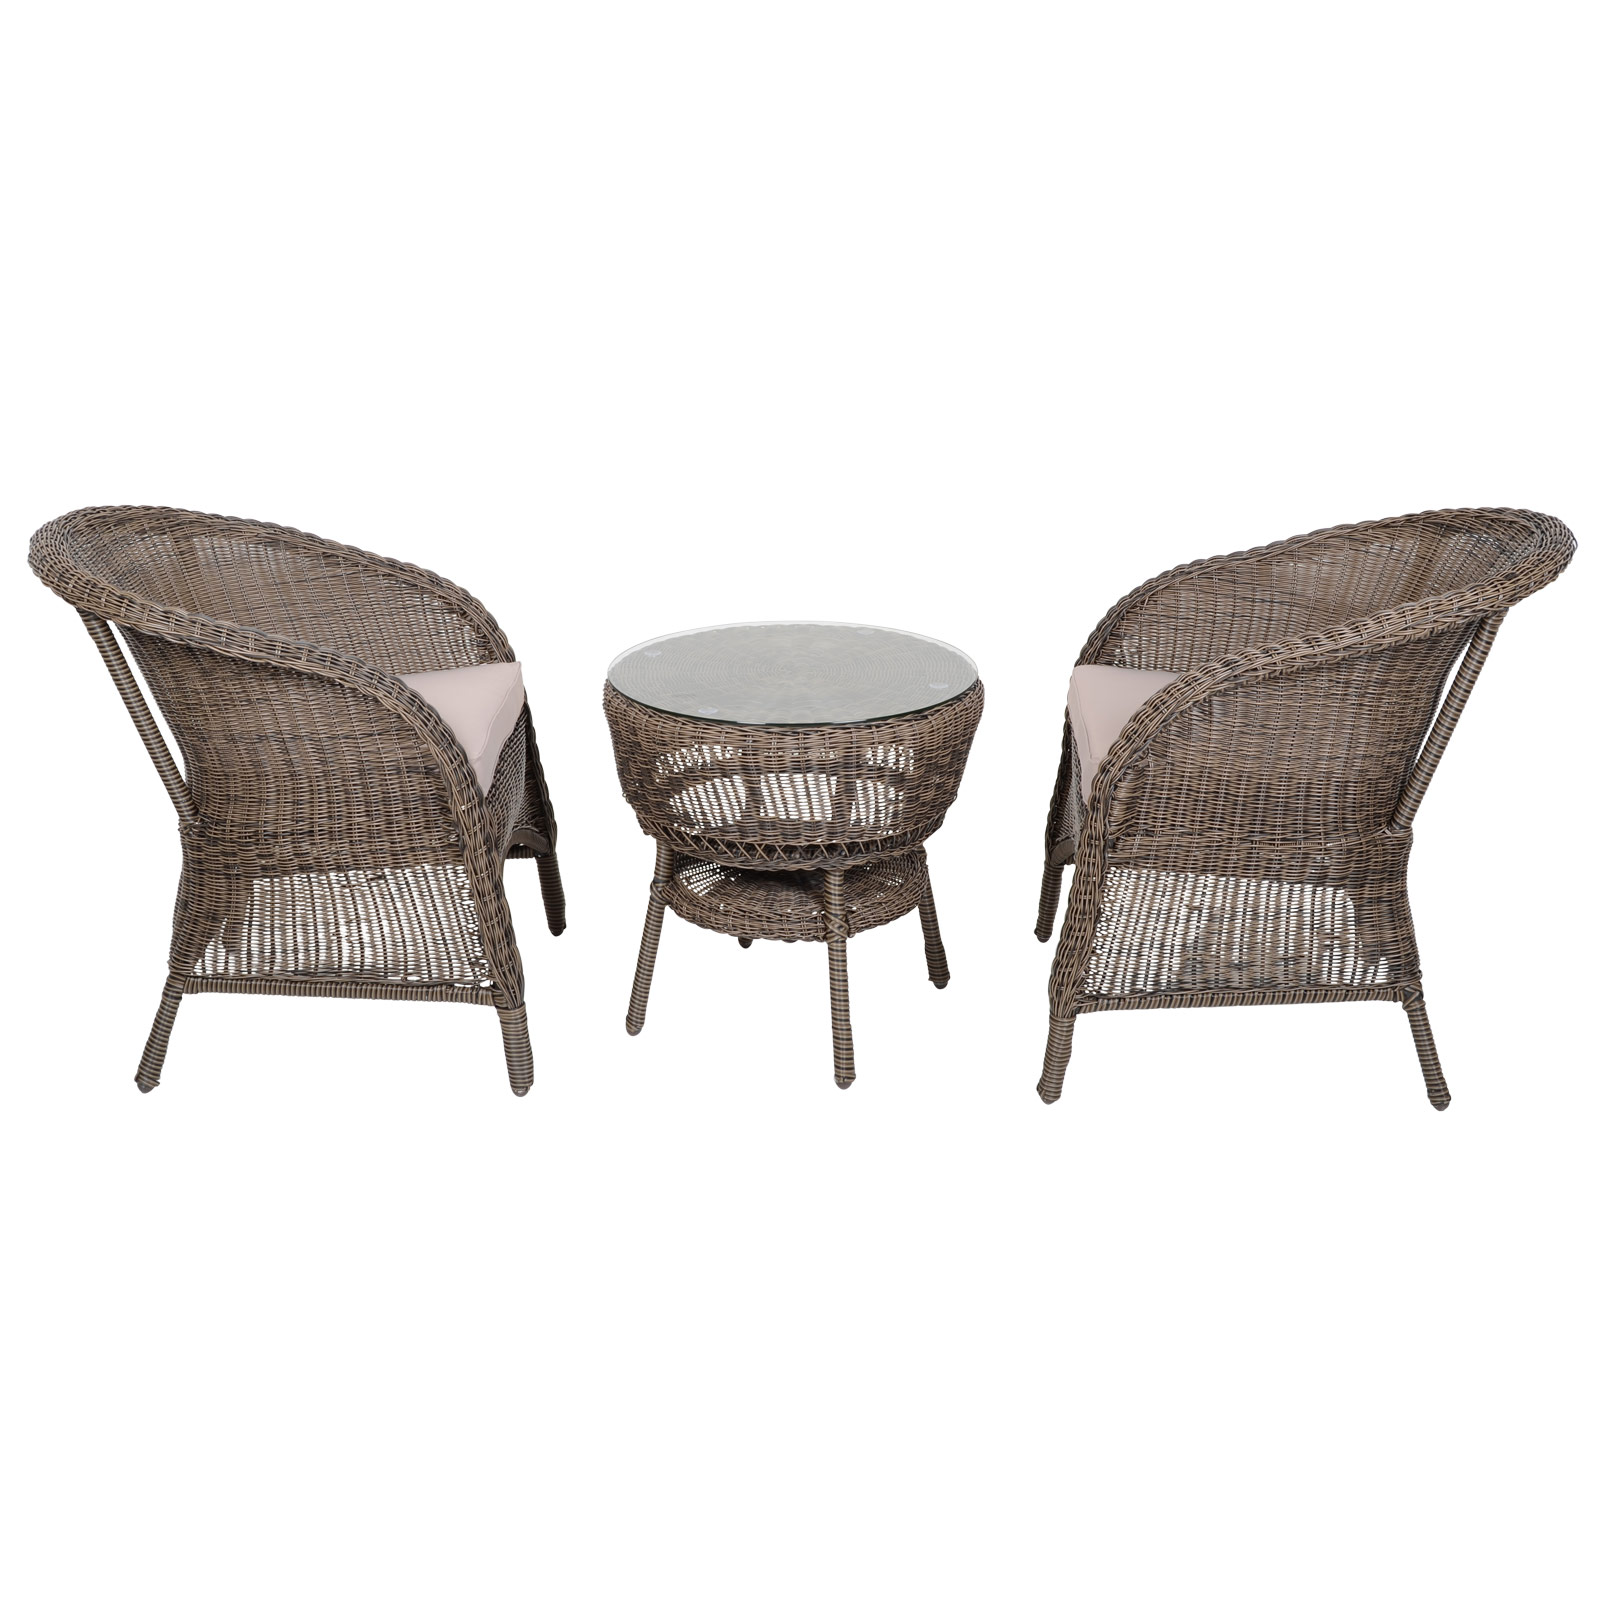 Taupe Wicker Coffee Table: Marseille 3 Piece Garden Dining Set With Table 2x Chairs